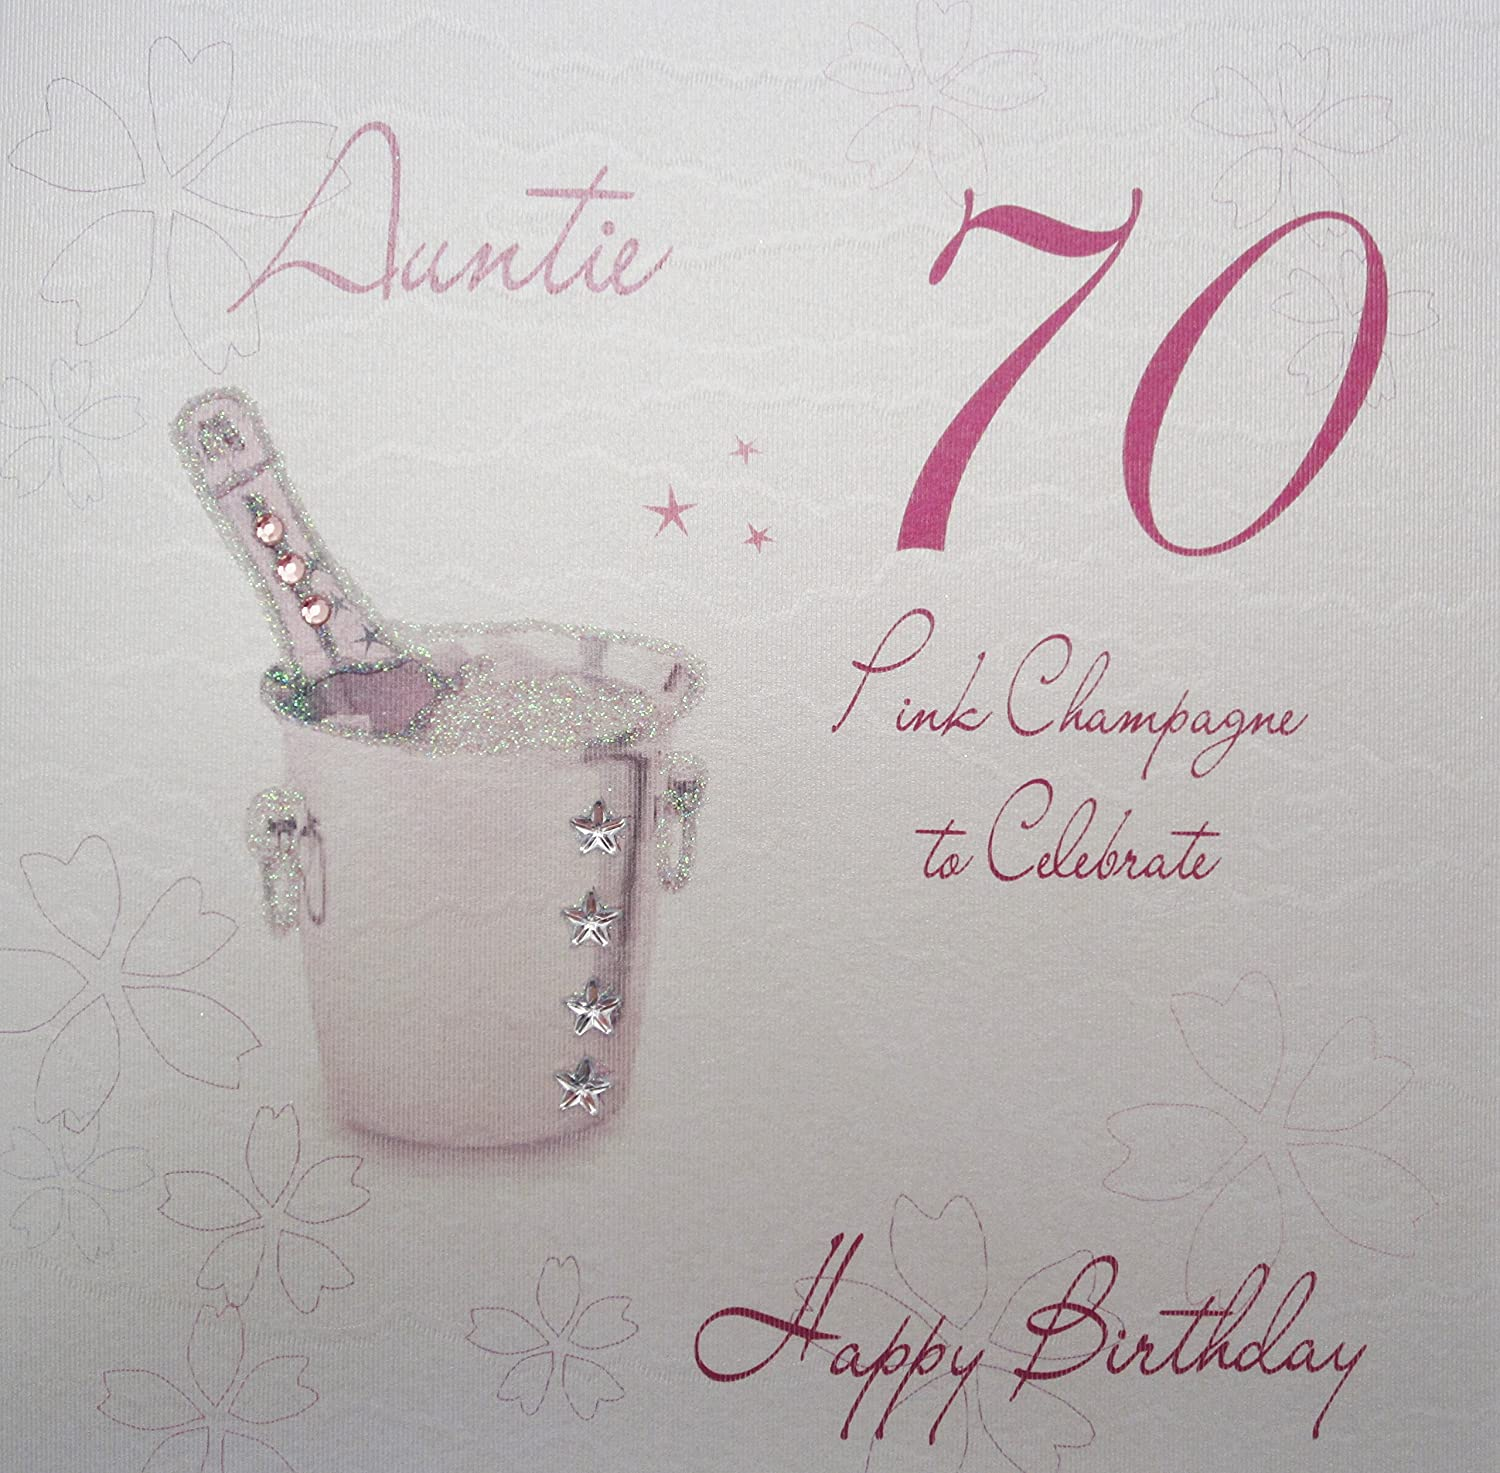 White cotton cards wba70p a pink champagne auntie 70 happy white cotton cards wba70p a pink champagne auntie 70 happy birthday handmade 70th birthday card white amazon kitchen home kristyandbryce Choice Image